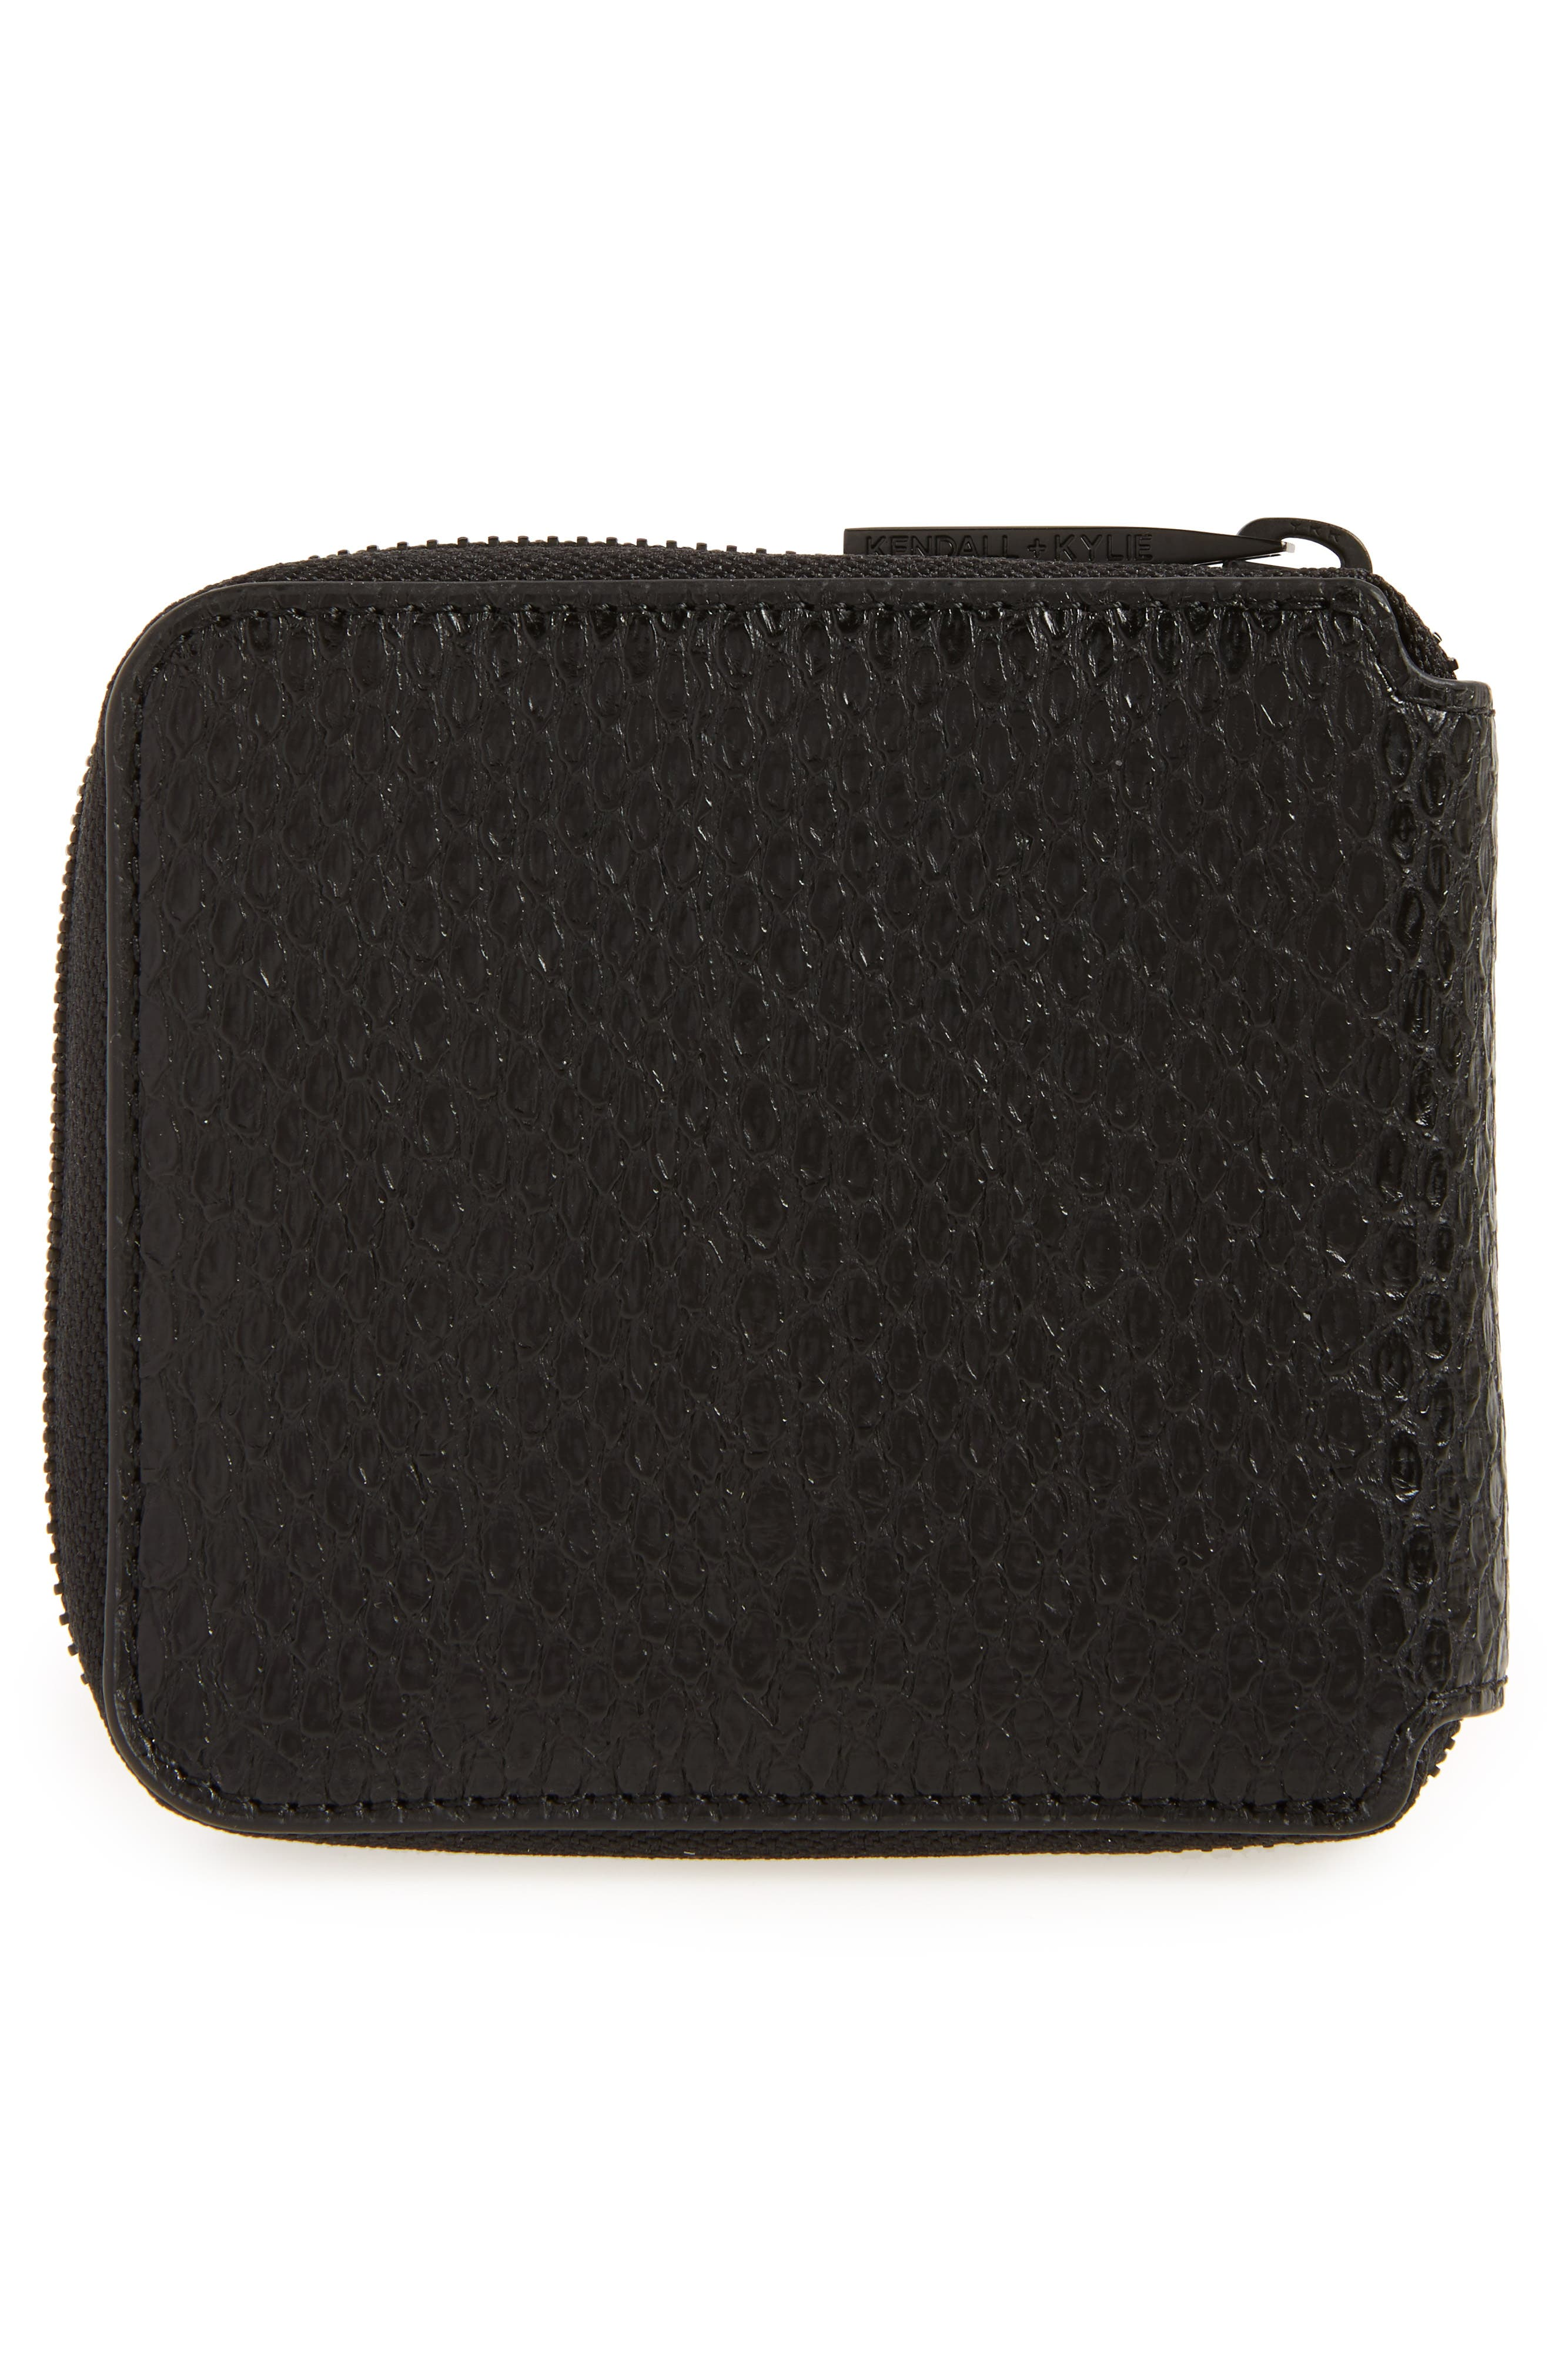 Brodie Faux Leather Wallet,                             Alternate thumbnail 4, color,                             004